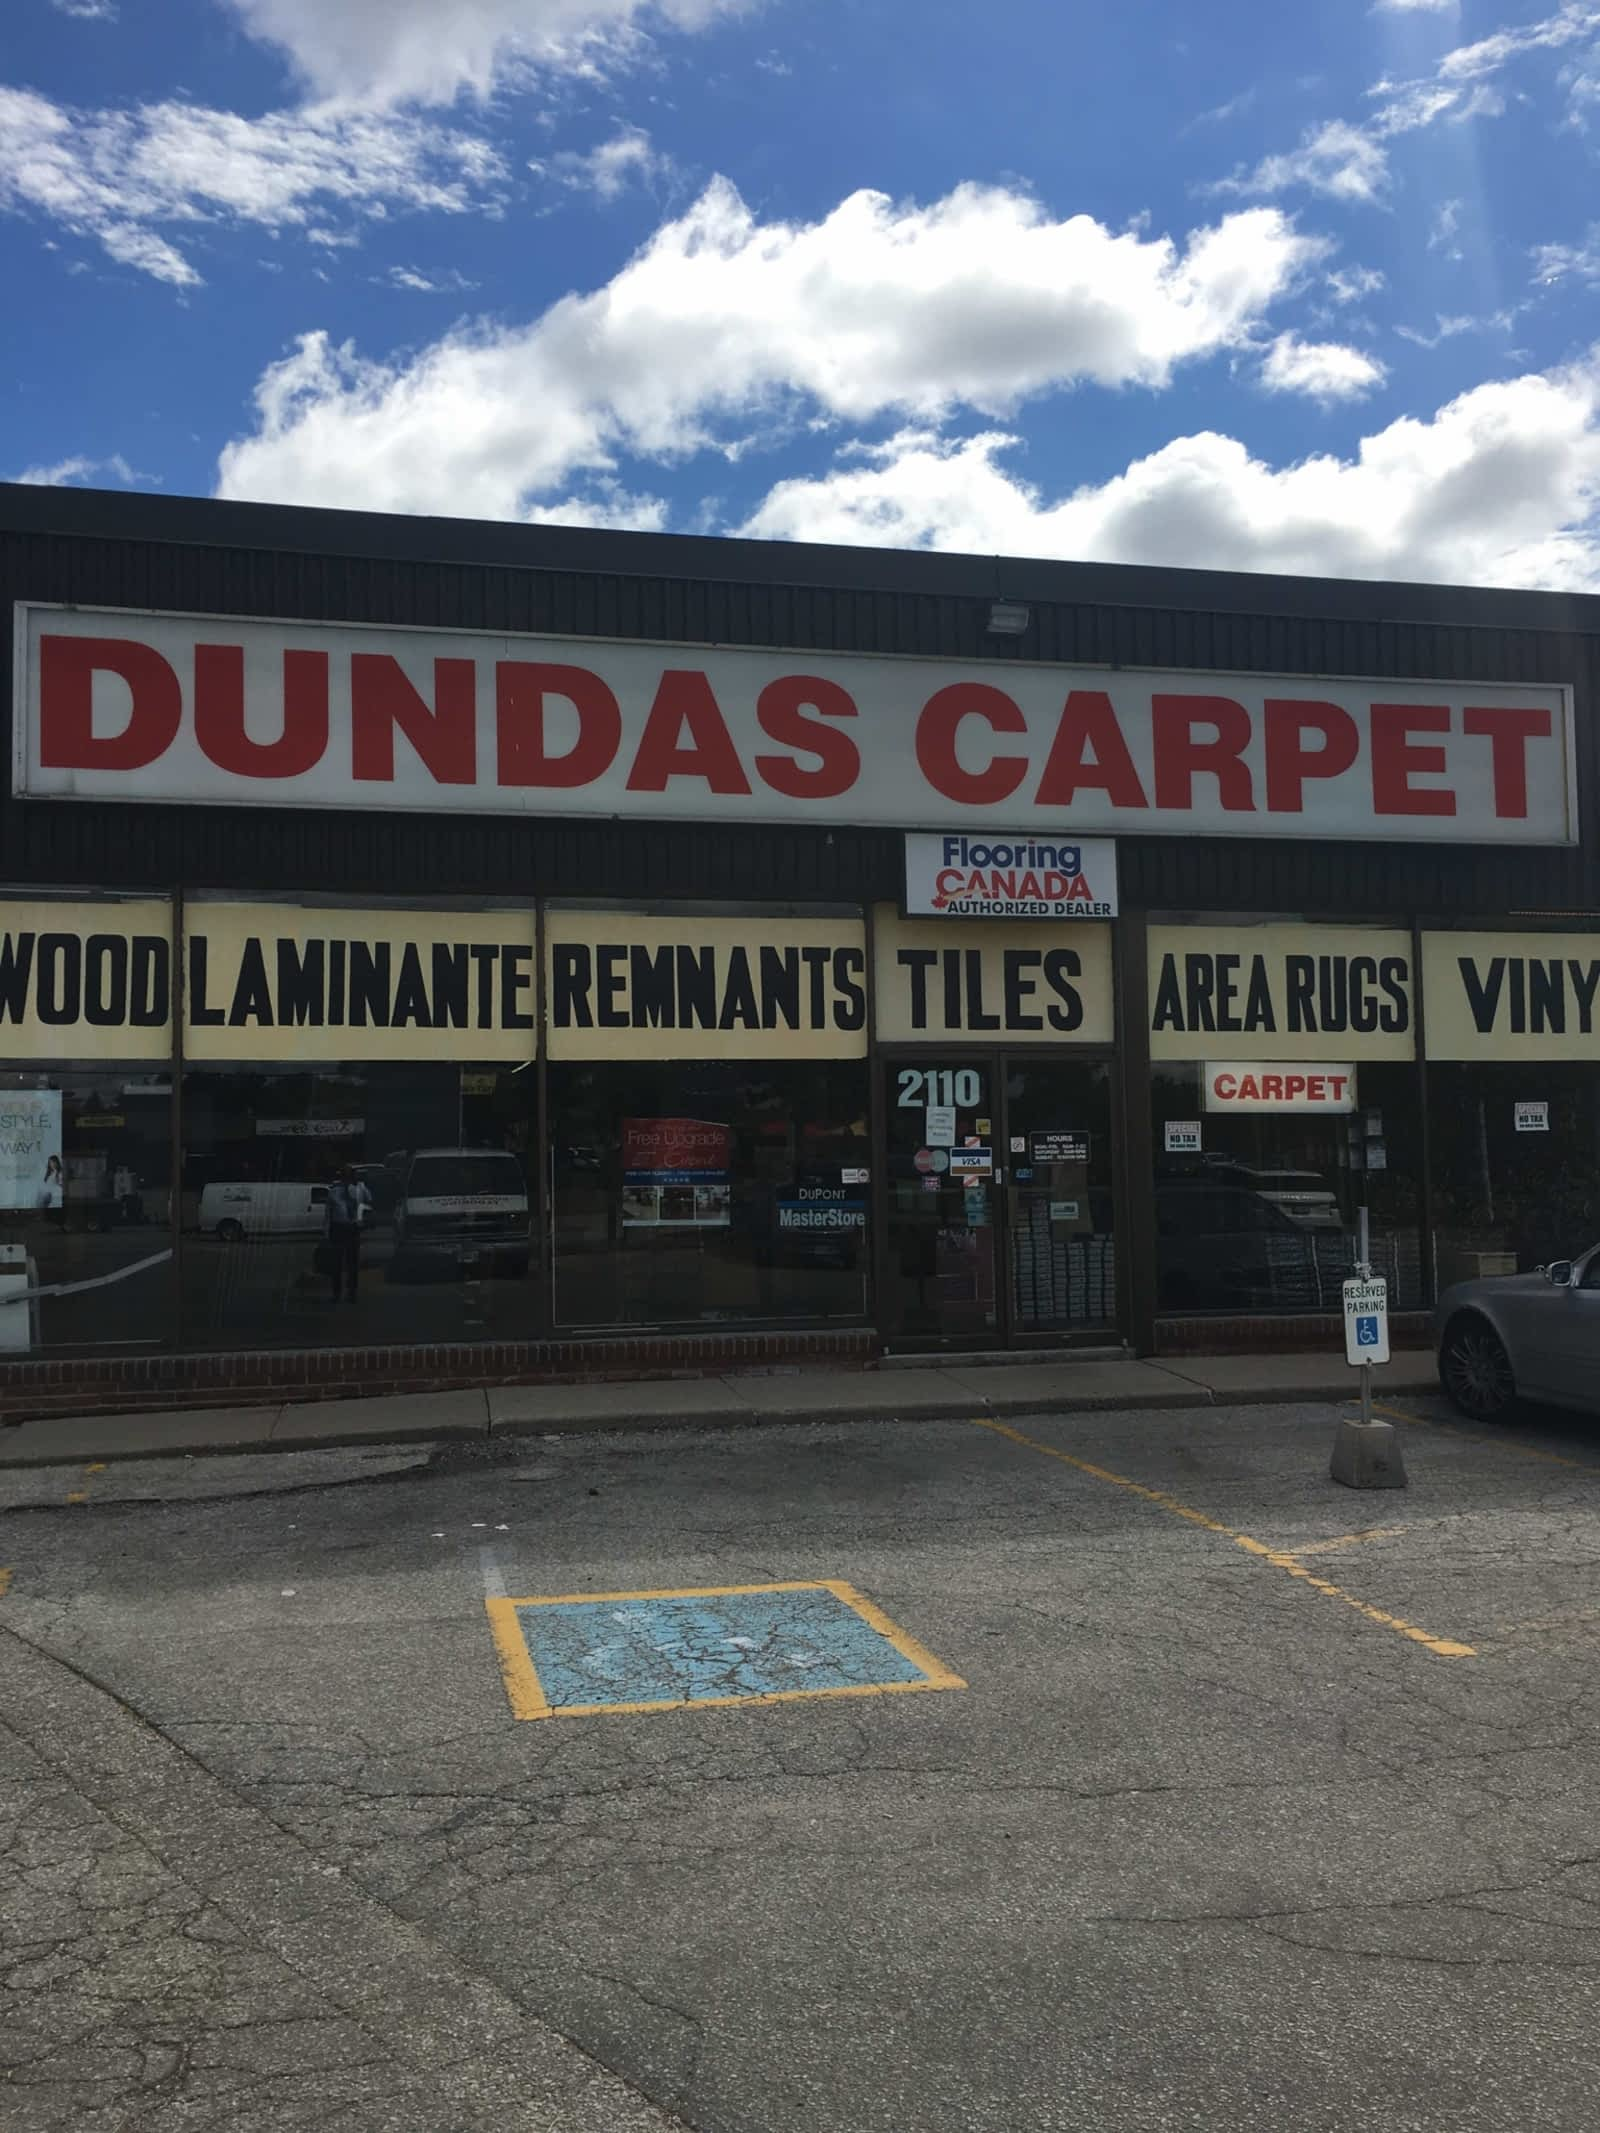 1425 Dundas St E Mississauga Dundas Carpet And Flooring 2110 Dundas St E Mississauga On